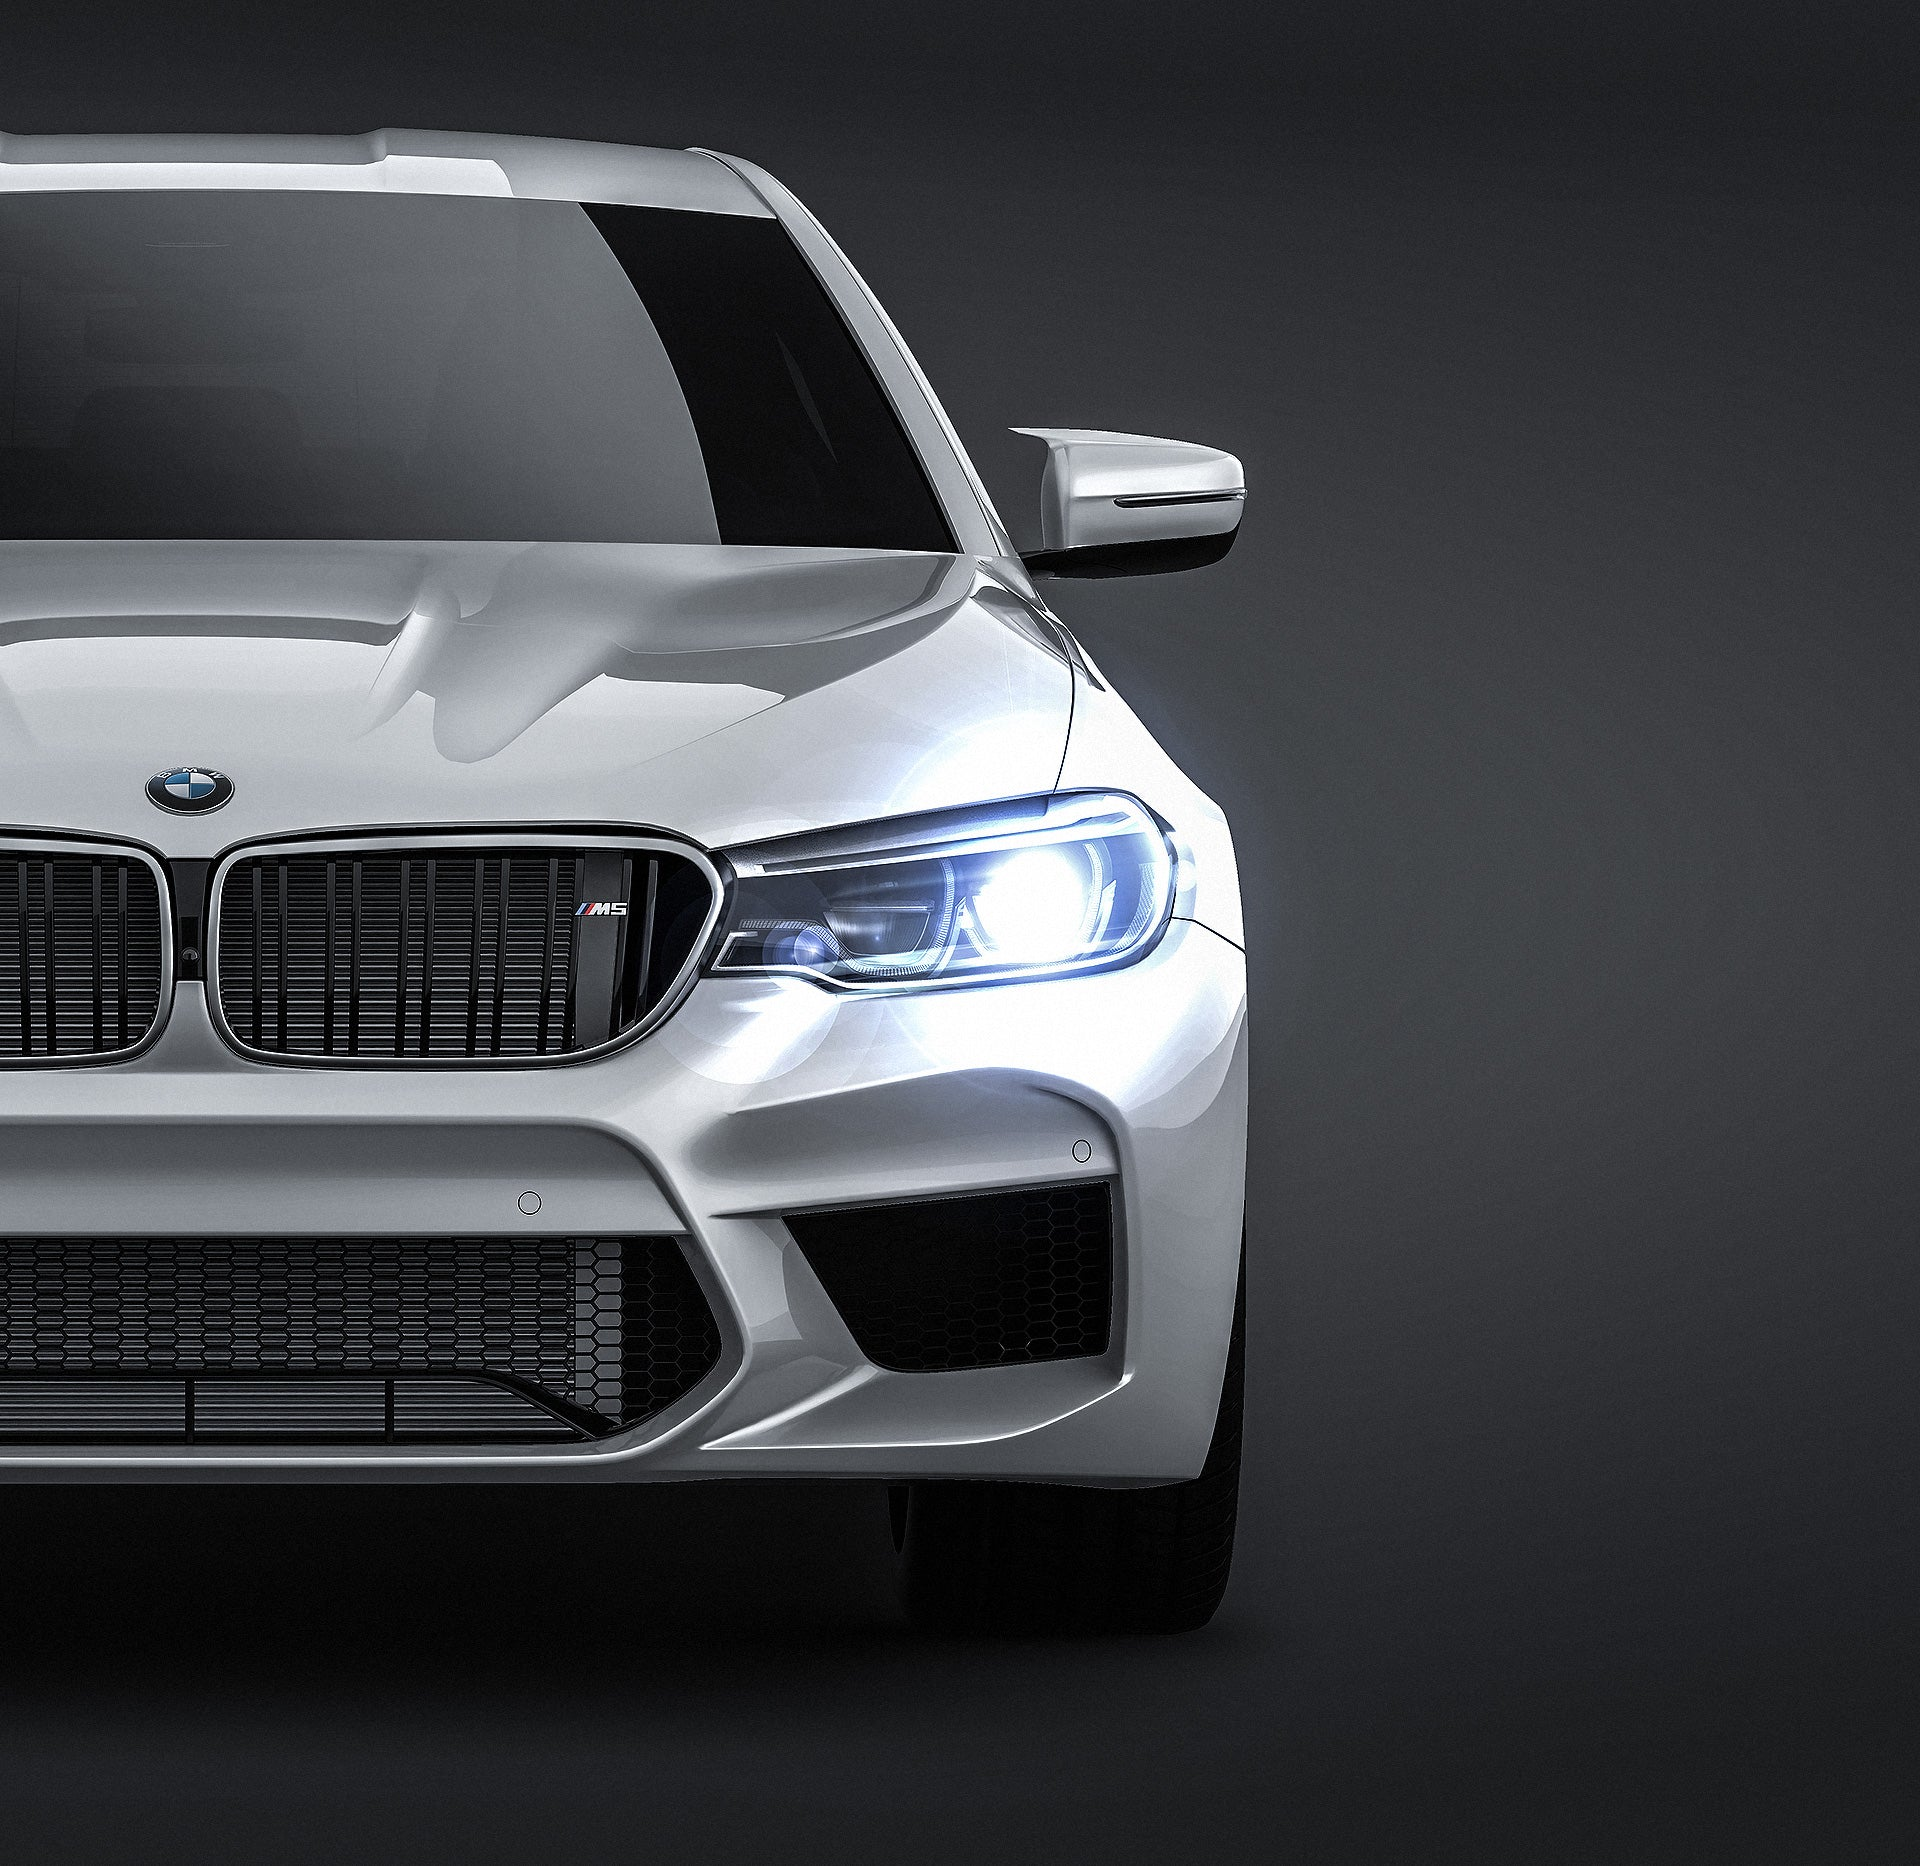 BMW M5 F90 2018 - all sides Car Mockup Template.psd